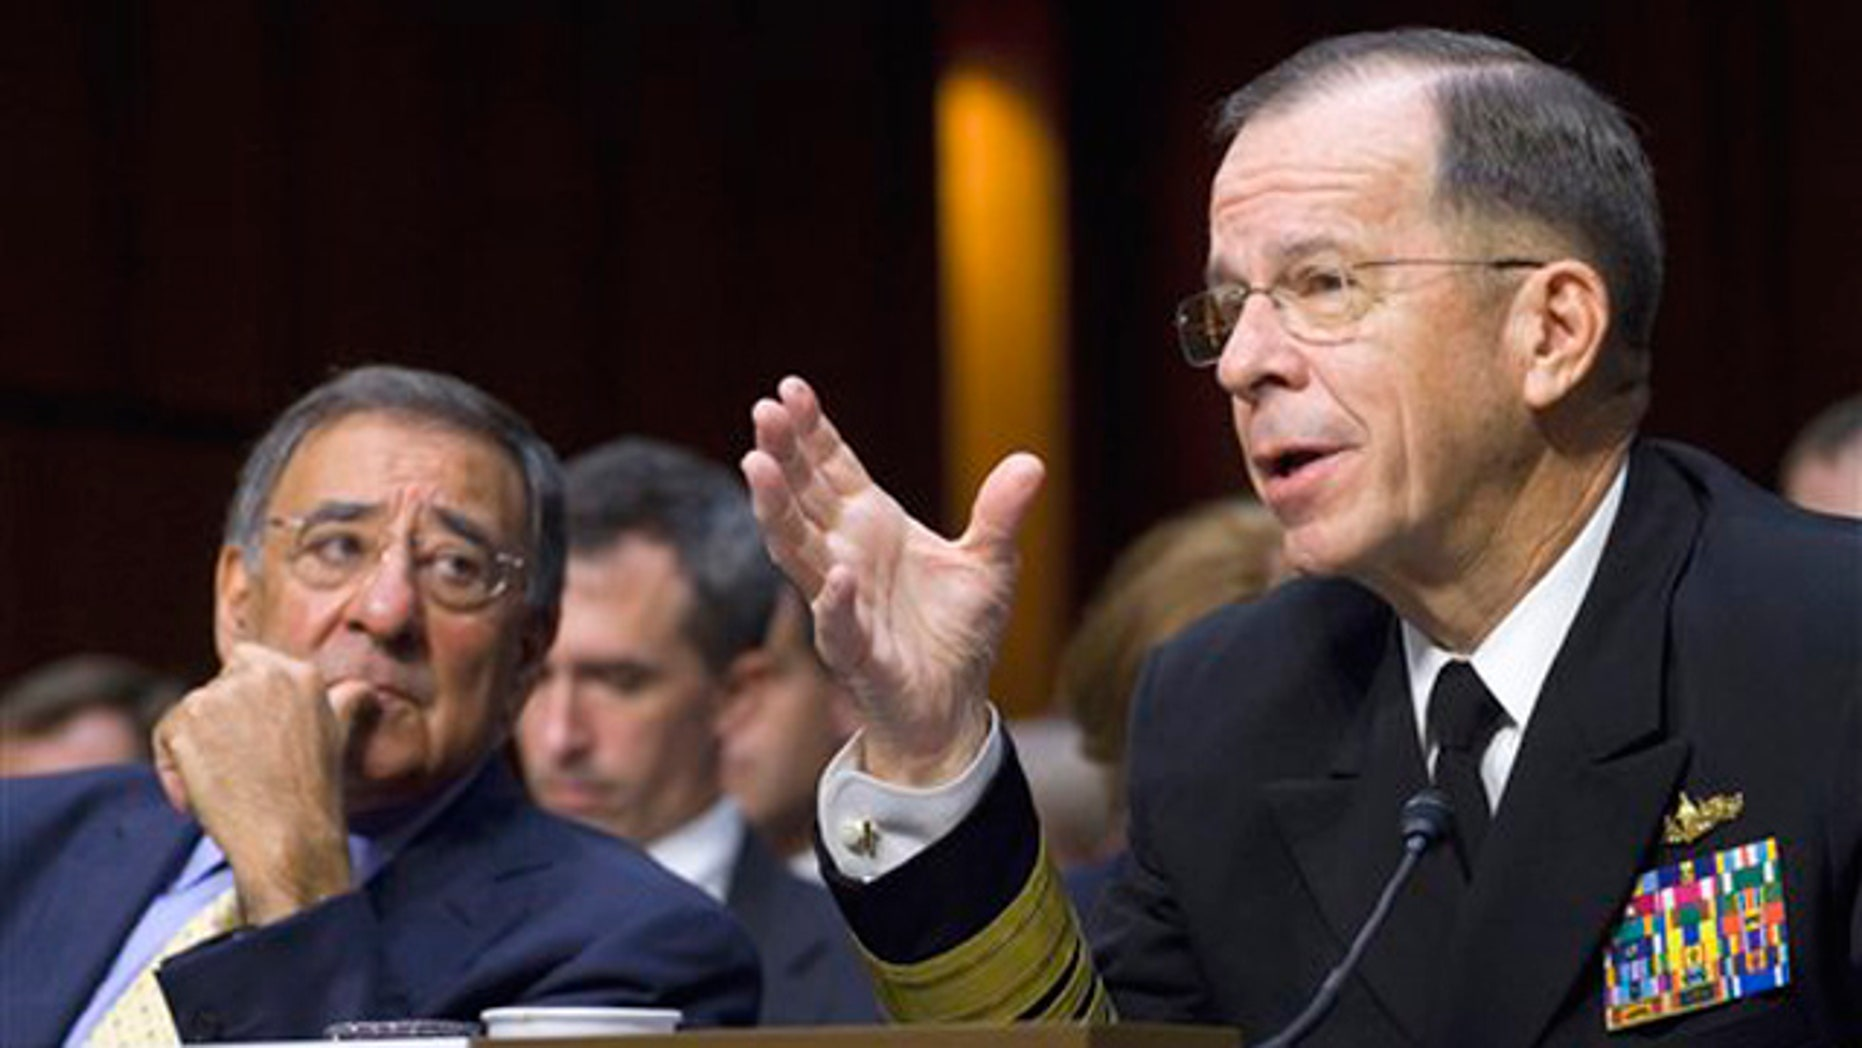 Defense Secretary Leon Panetta looks on at left as Joint Chiefs Chairman Adm. Michael Mullen, testifies on Capitol Hill in Washington, Thursday, Sept. 22, 2011, before the Senate Armed Services Committee hearing on U.S. strategy in Afghanistan and Iraq.